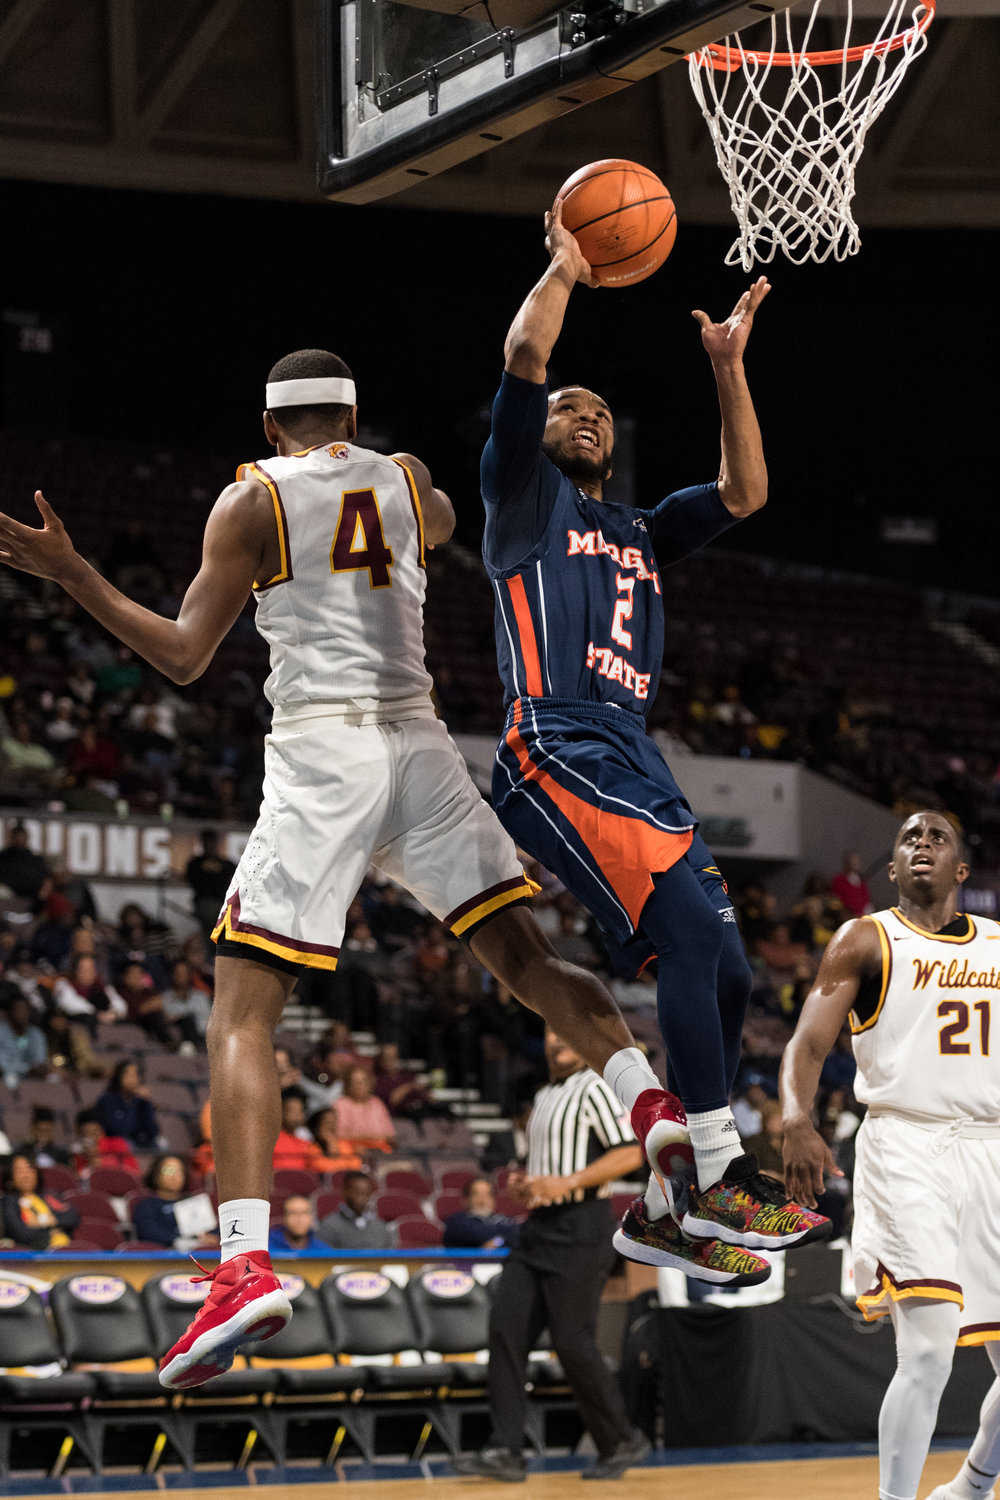 Bethune-Cookman Wildcats guard Isaiah Bailey (2) goes up for a shot against the Bethune-Cookman Wildcats during the Wednesday, March 7, 2018 game held at Norfolk Scope Arena.